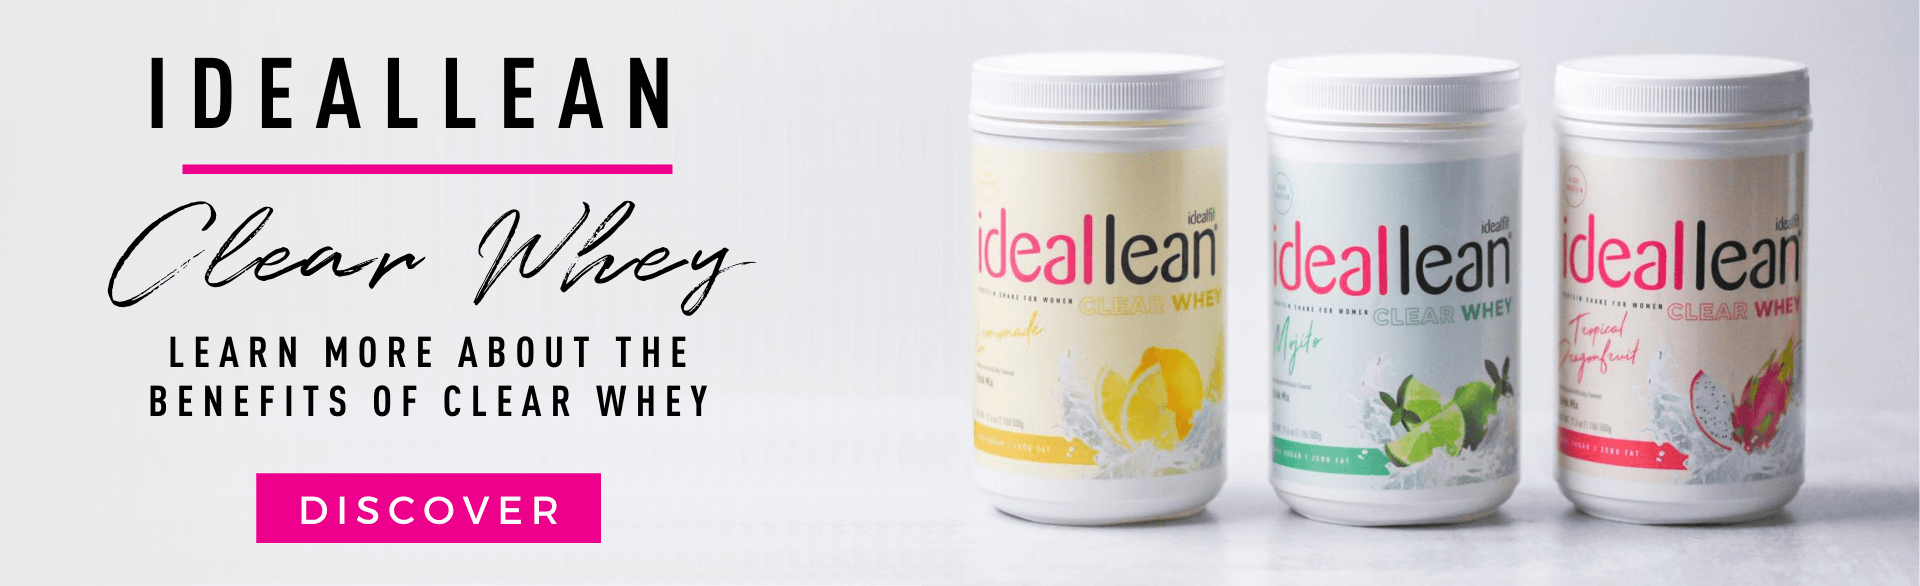 clear whey benefits